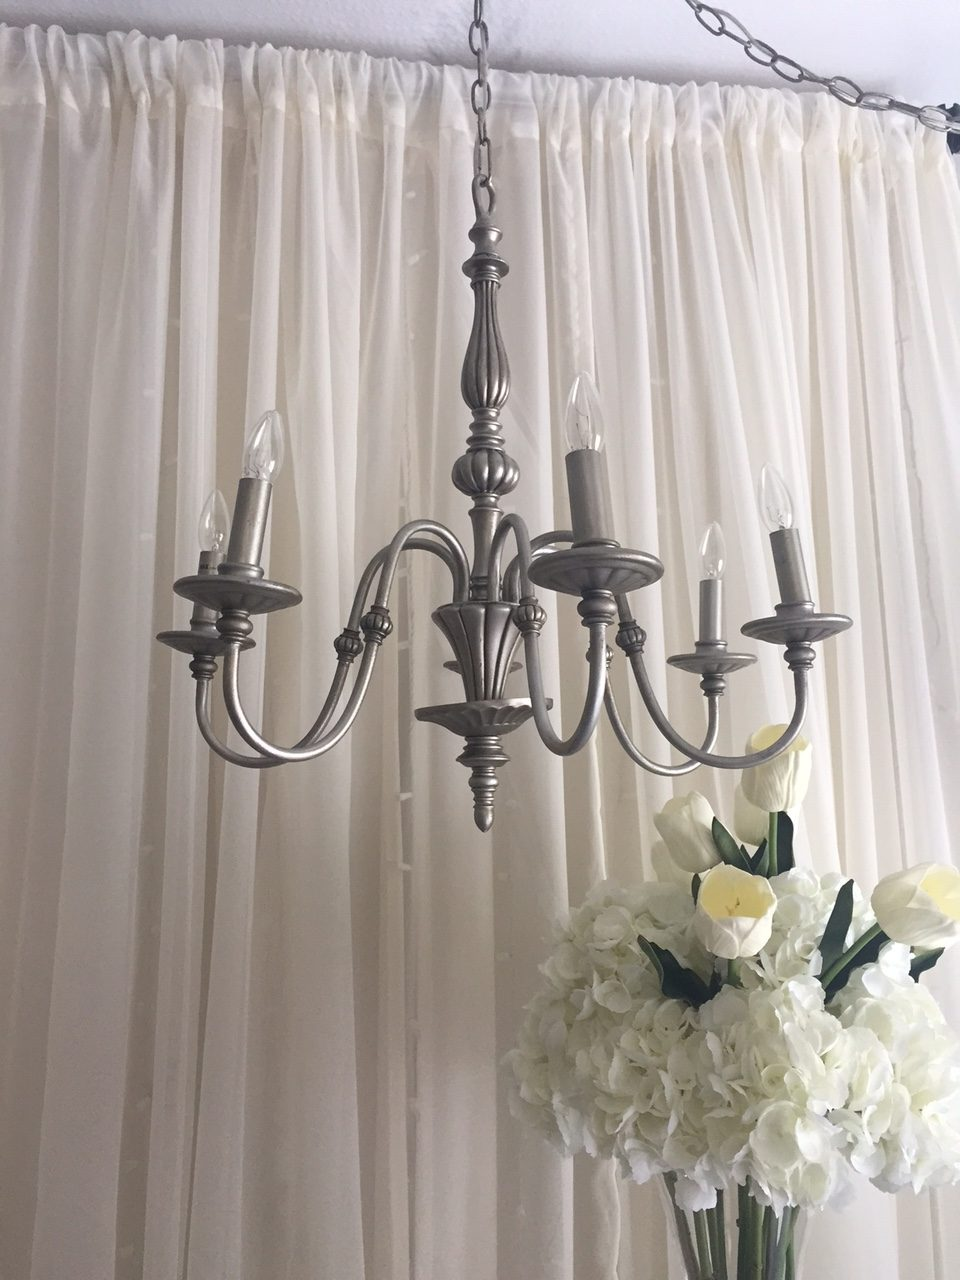 Brushed Silver Chandeliers Image